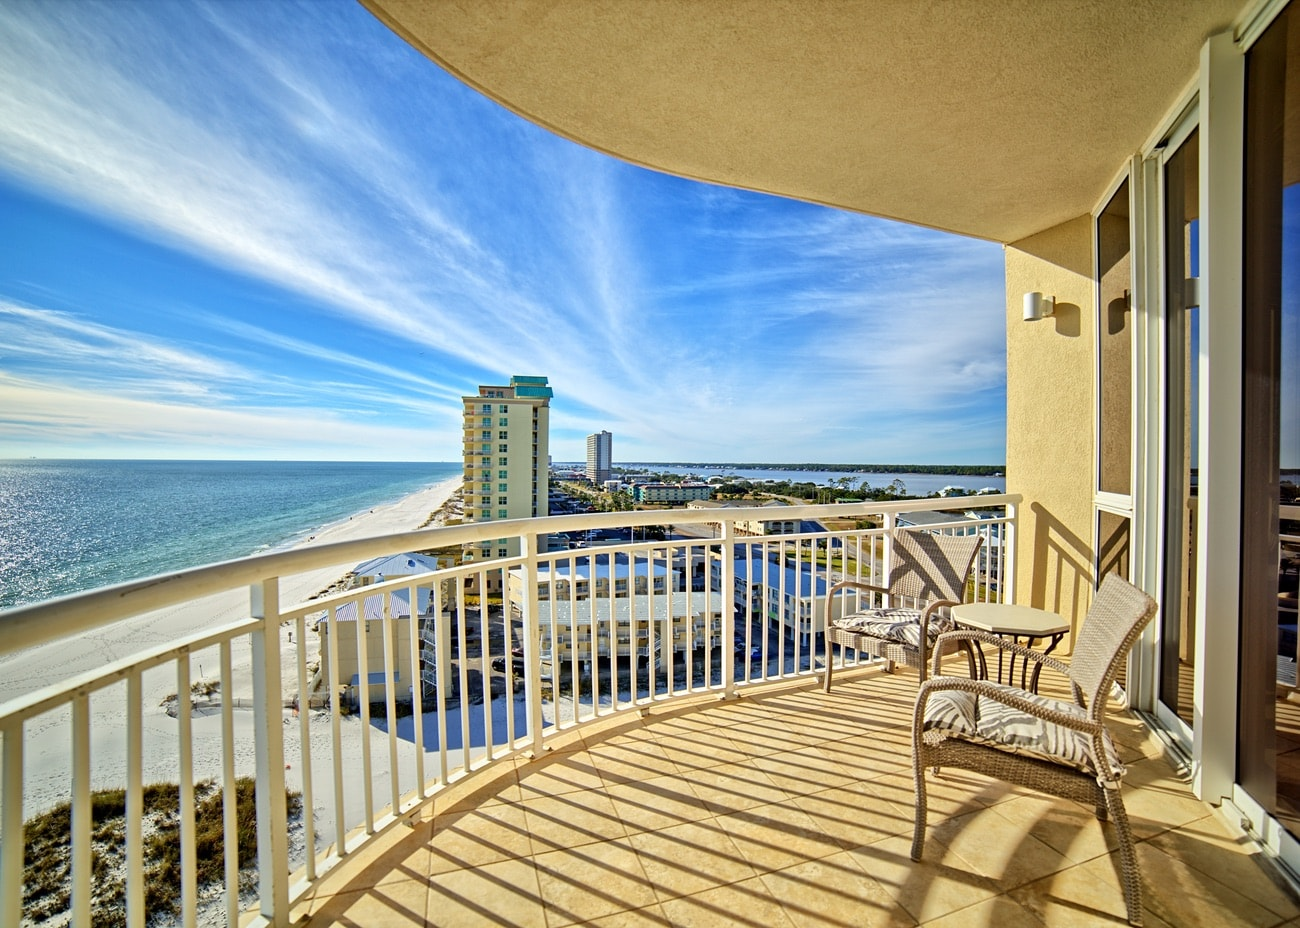 Sugar Beach Interiors, Miramar Beach Florida, Gulf Shores, Alabama Condo